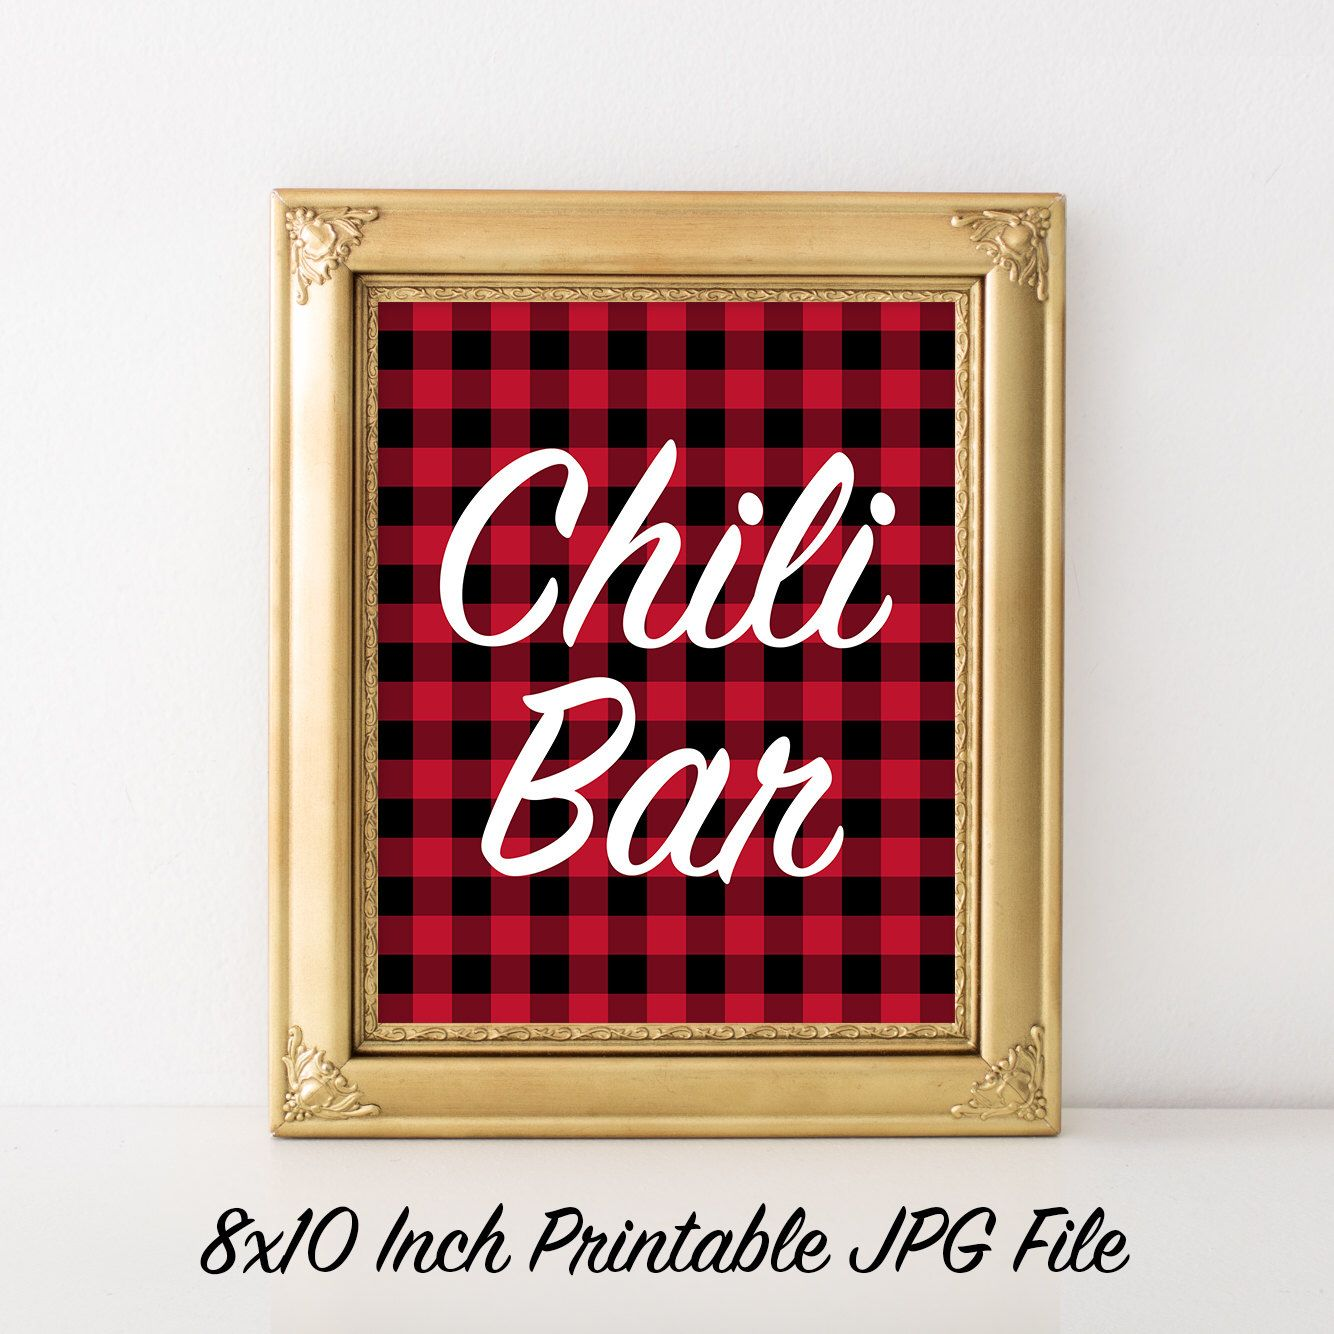 Items similar to Chili Bar Party Sign 8x10 Printable Red and Black Buffalo Plaid Party Print, Lumberjack Plaid, Buffalo Check, Fall Party, Woodsy, Cabin 20B on Etsy